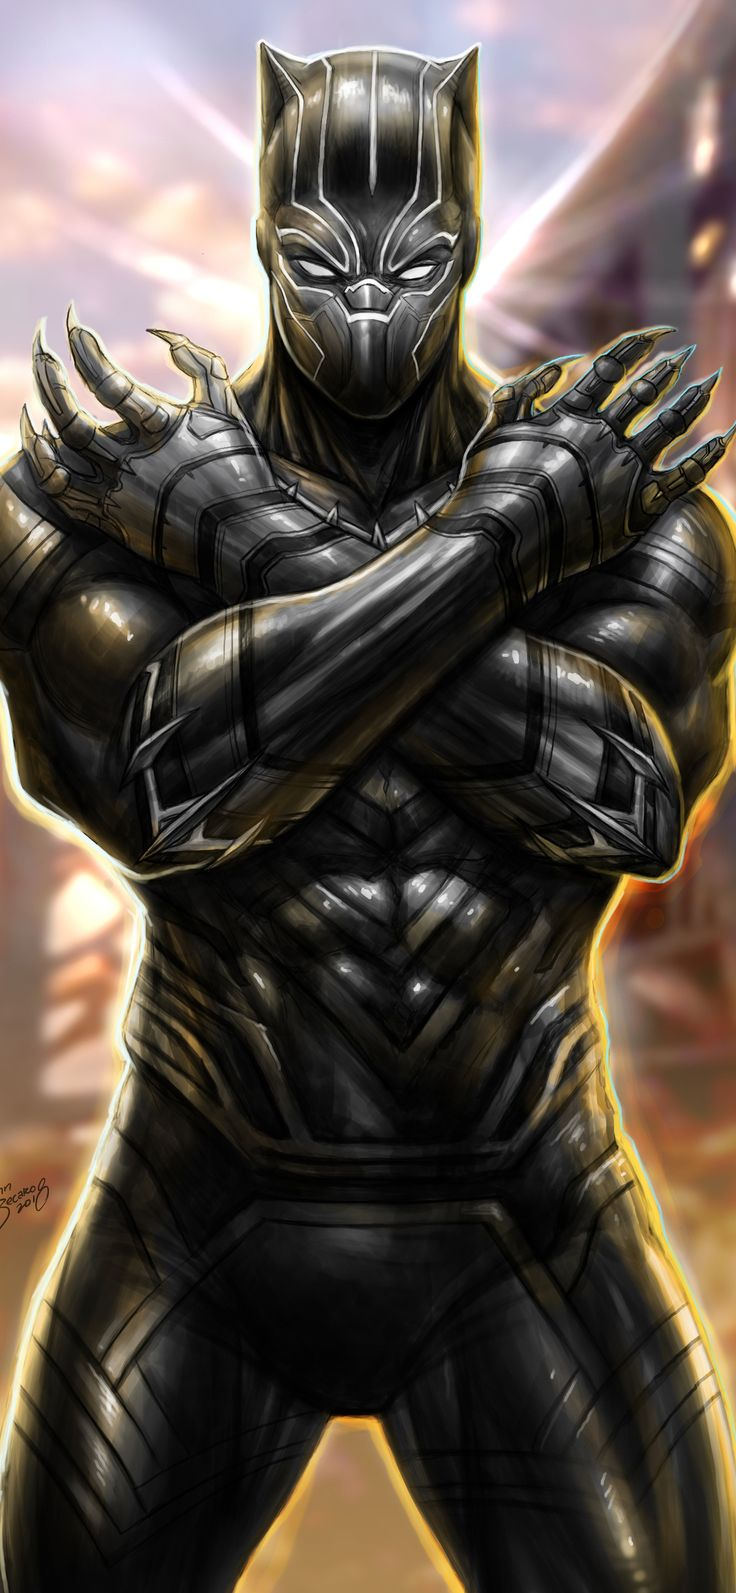 1125x2436 Black Panther New Arts Iphone XS,Iphone 10